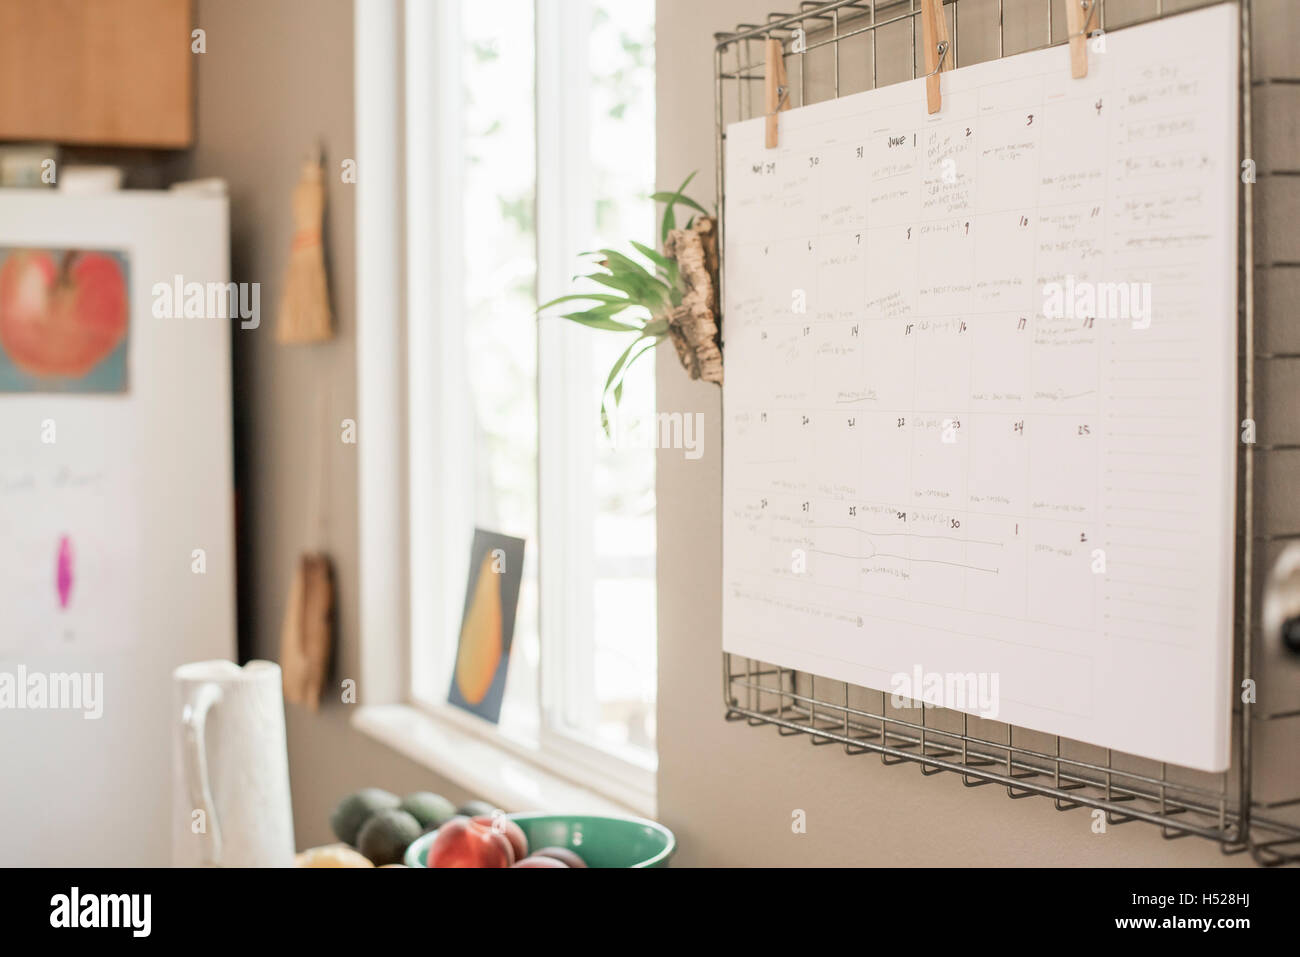 Wall planner on a kitchen wall. - Stock Image